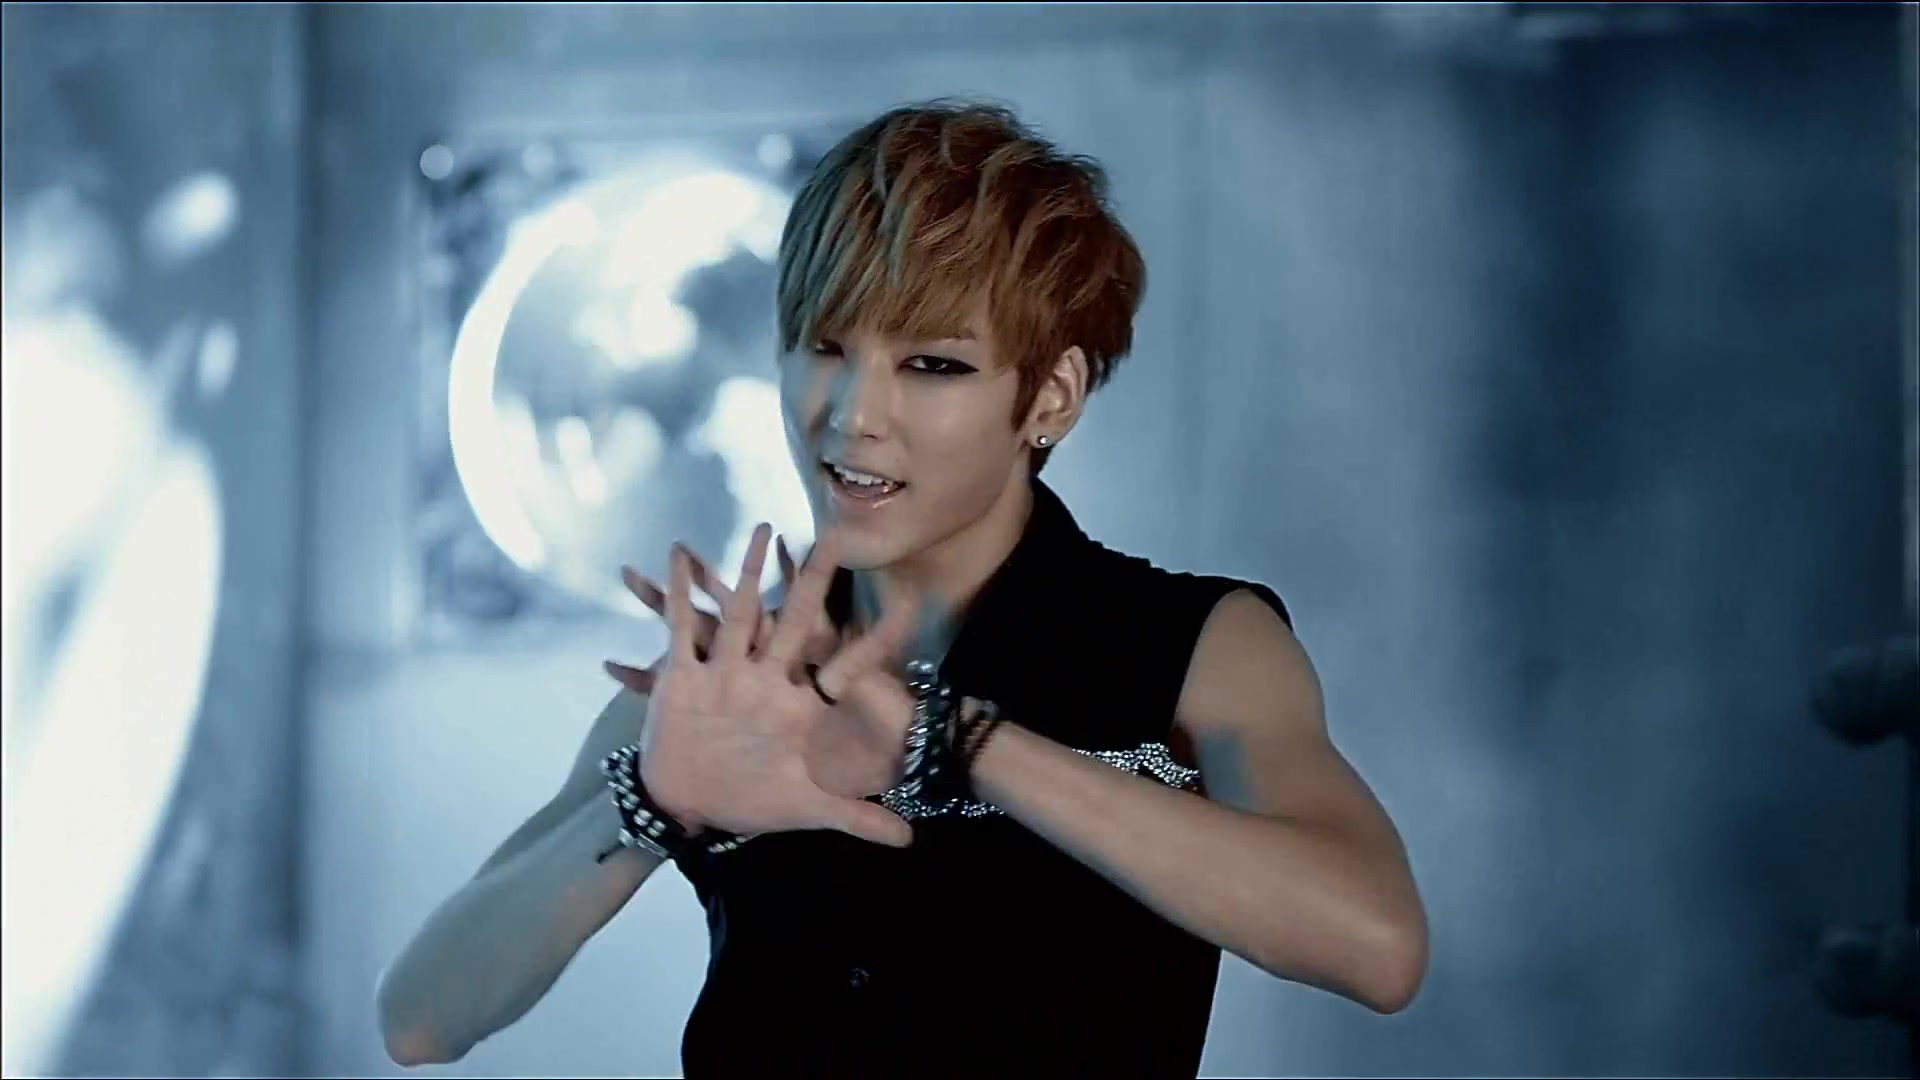 Download image u kiss kevin neverland pc android iphone and ipad